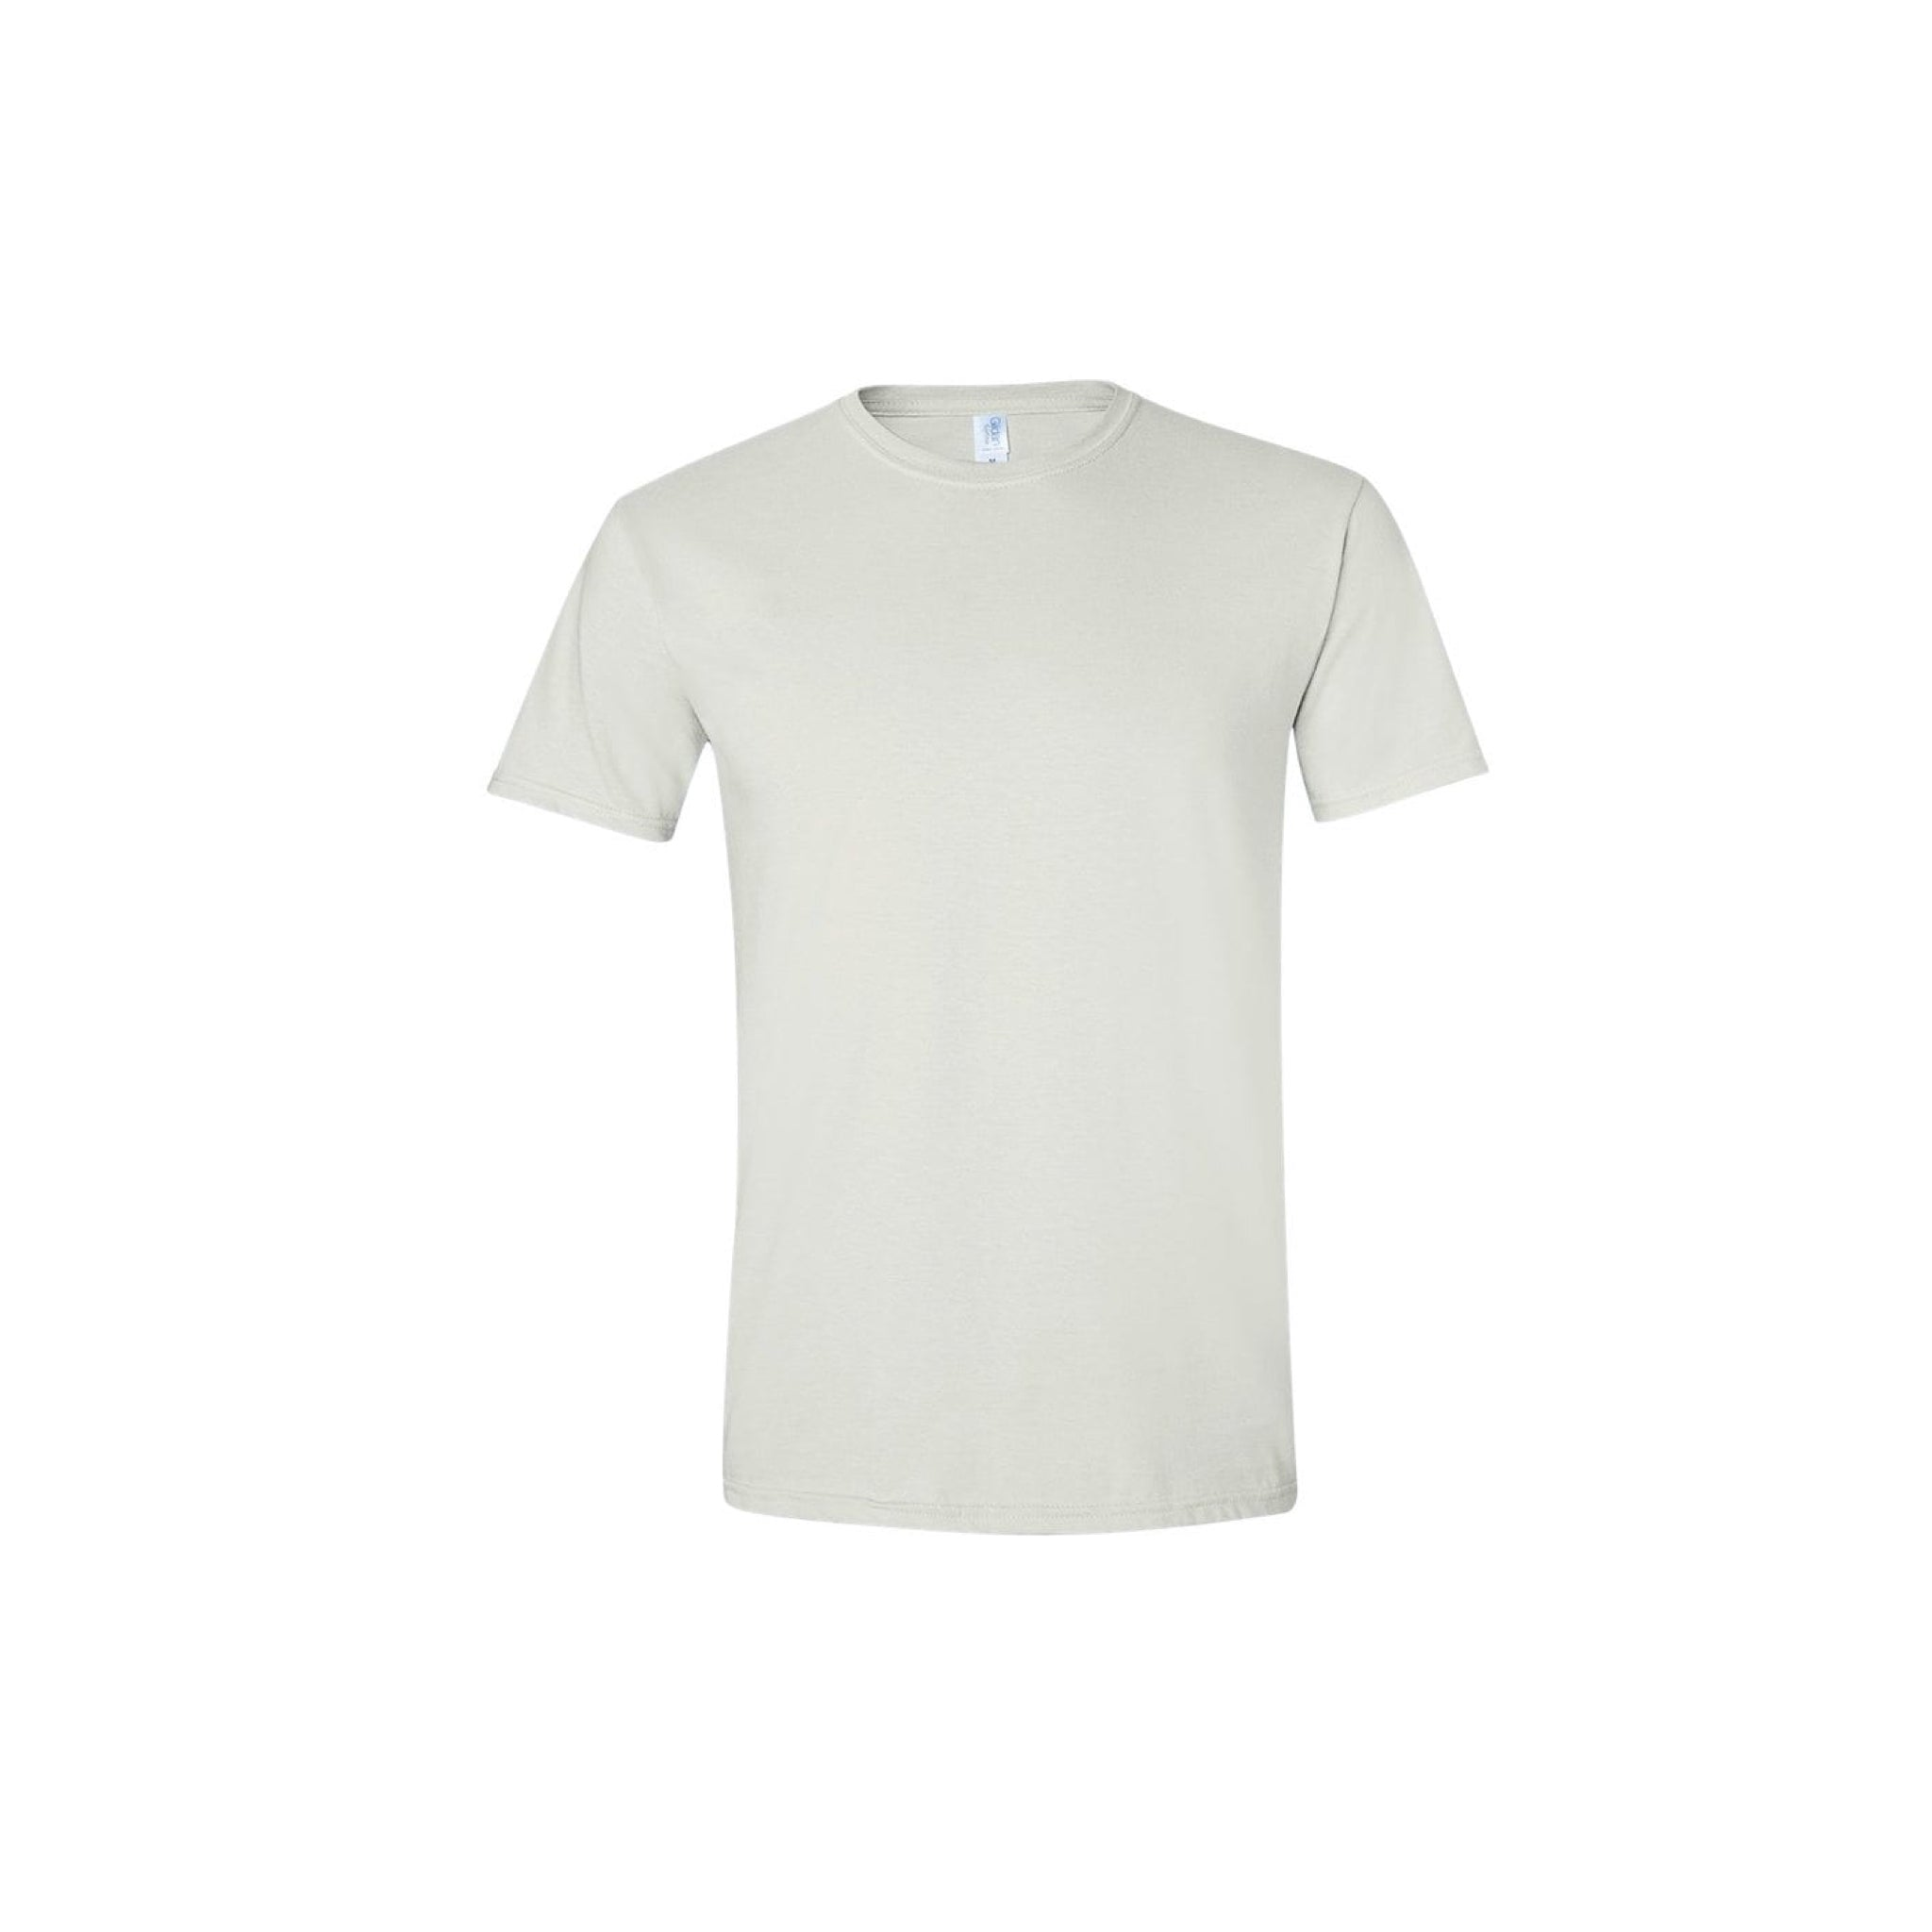 Men's T-shirt for Dyeing